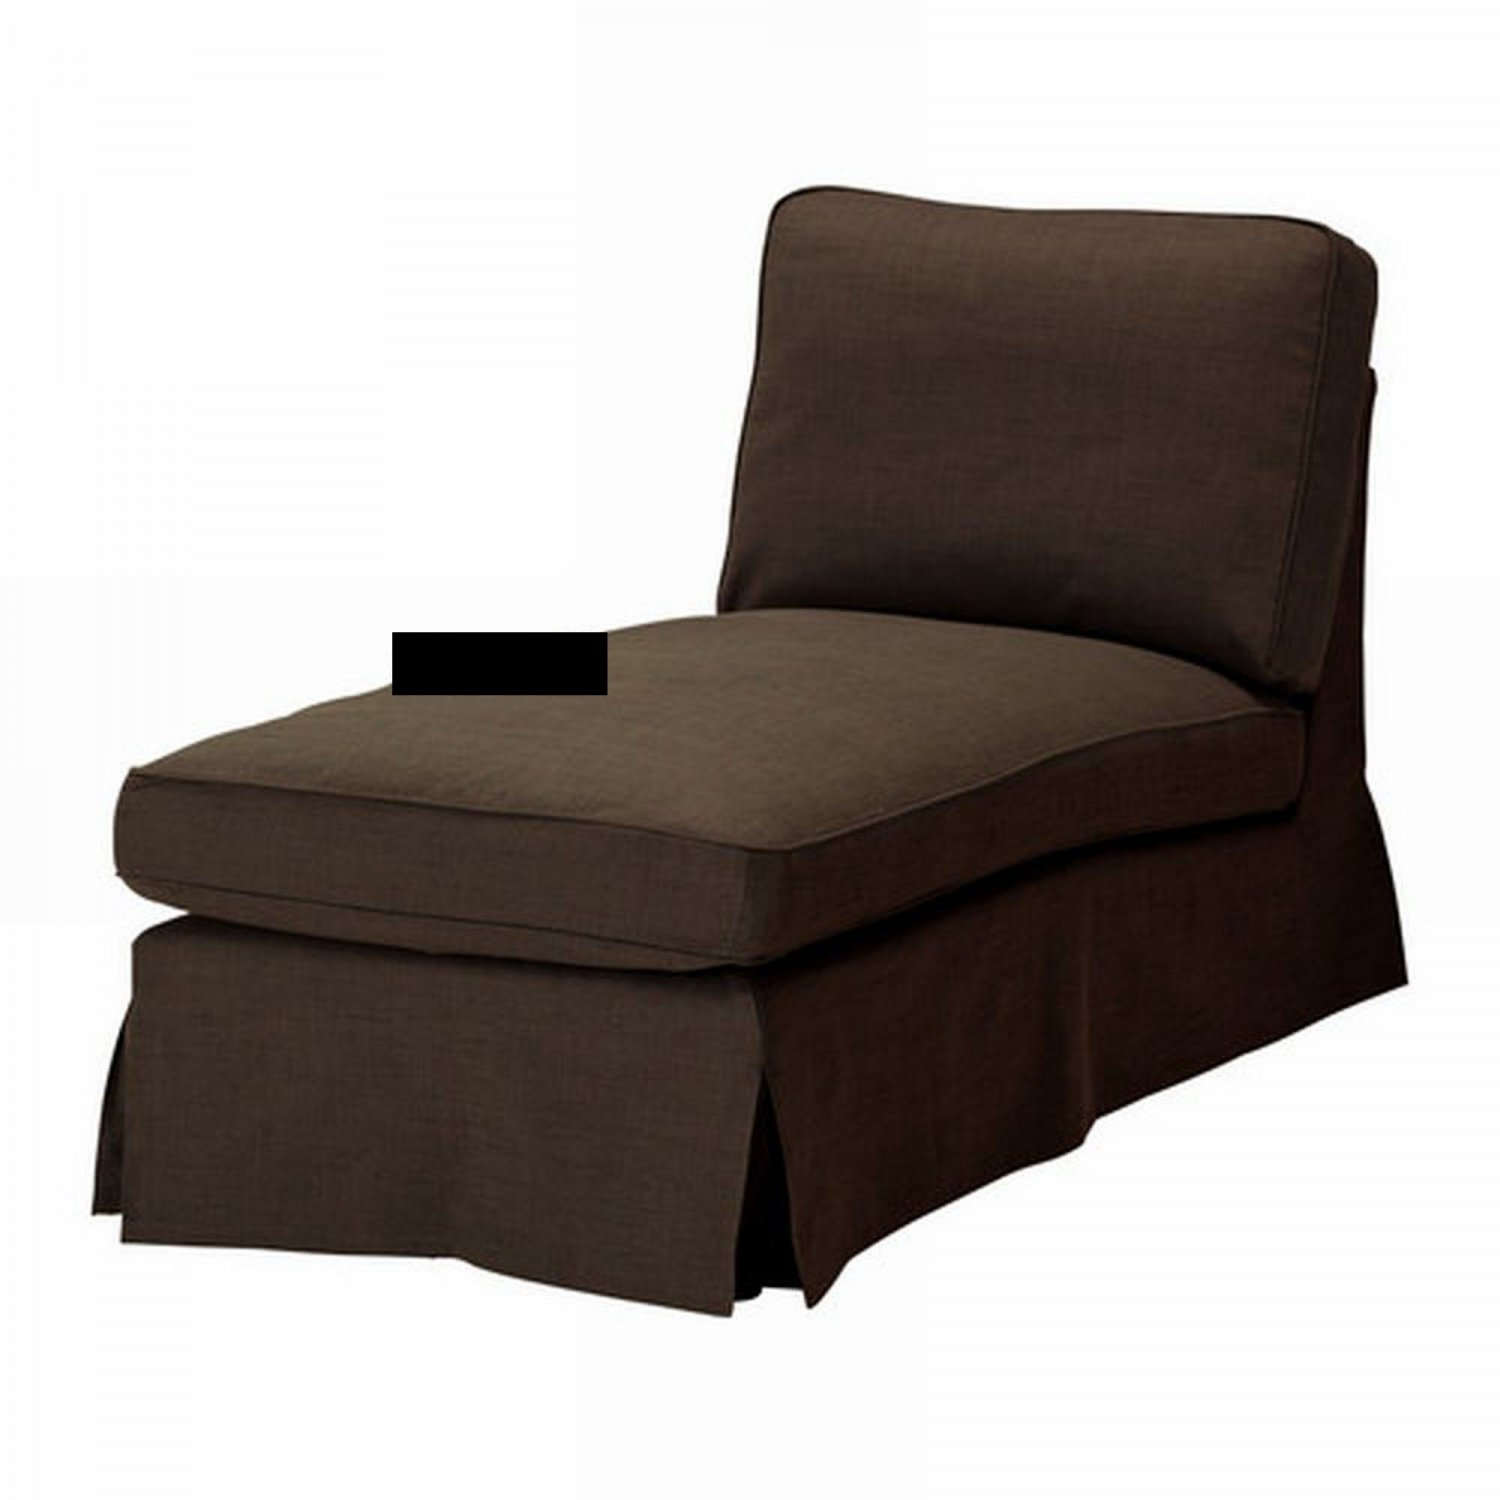 Ikea ektorp chaise longue cover slipcover svanby brown for Chaise longue cover